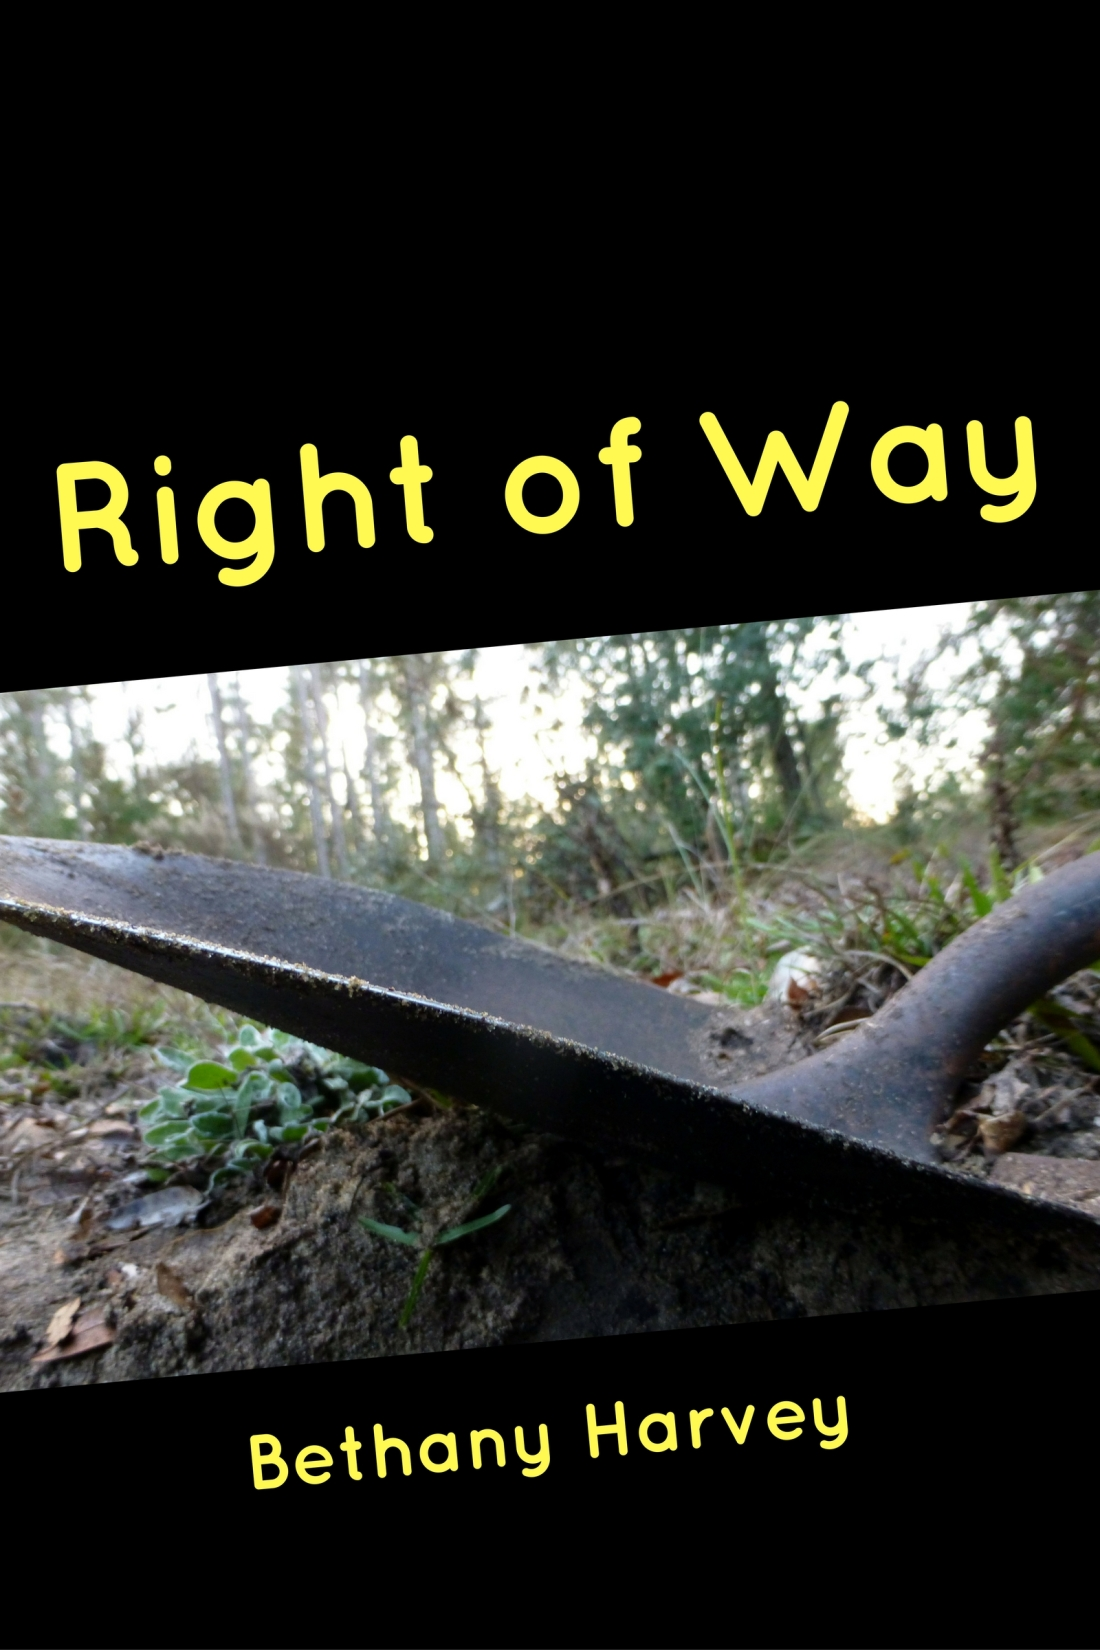 Right of Way book cover